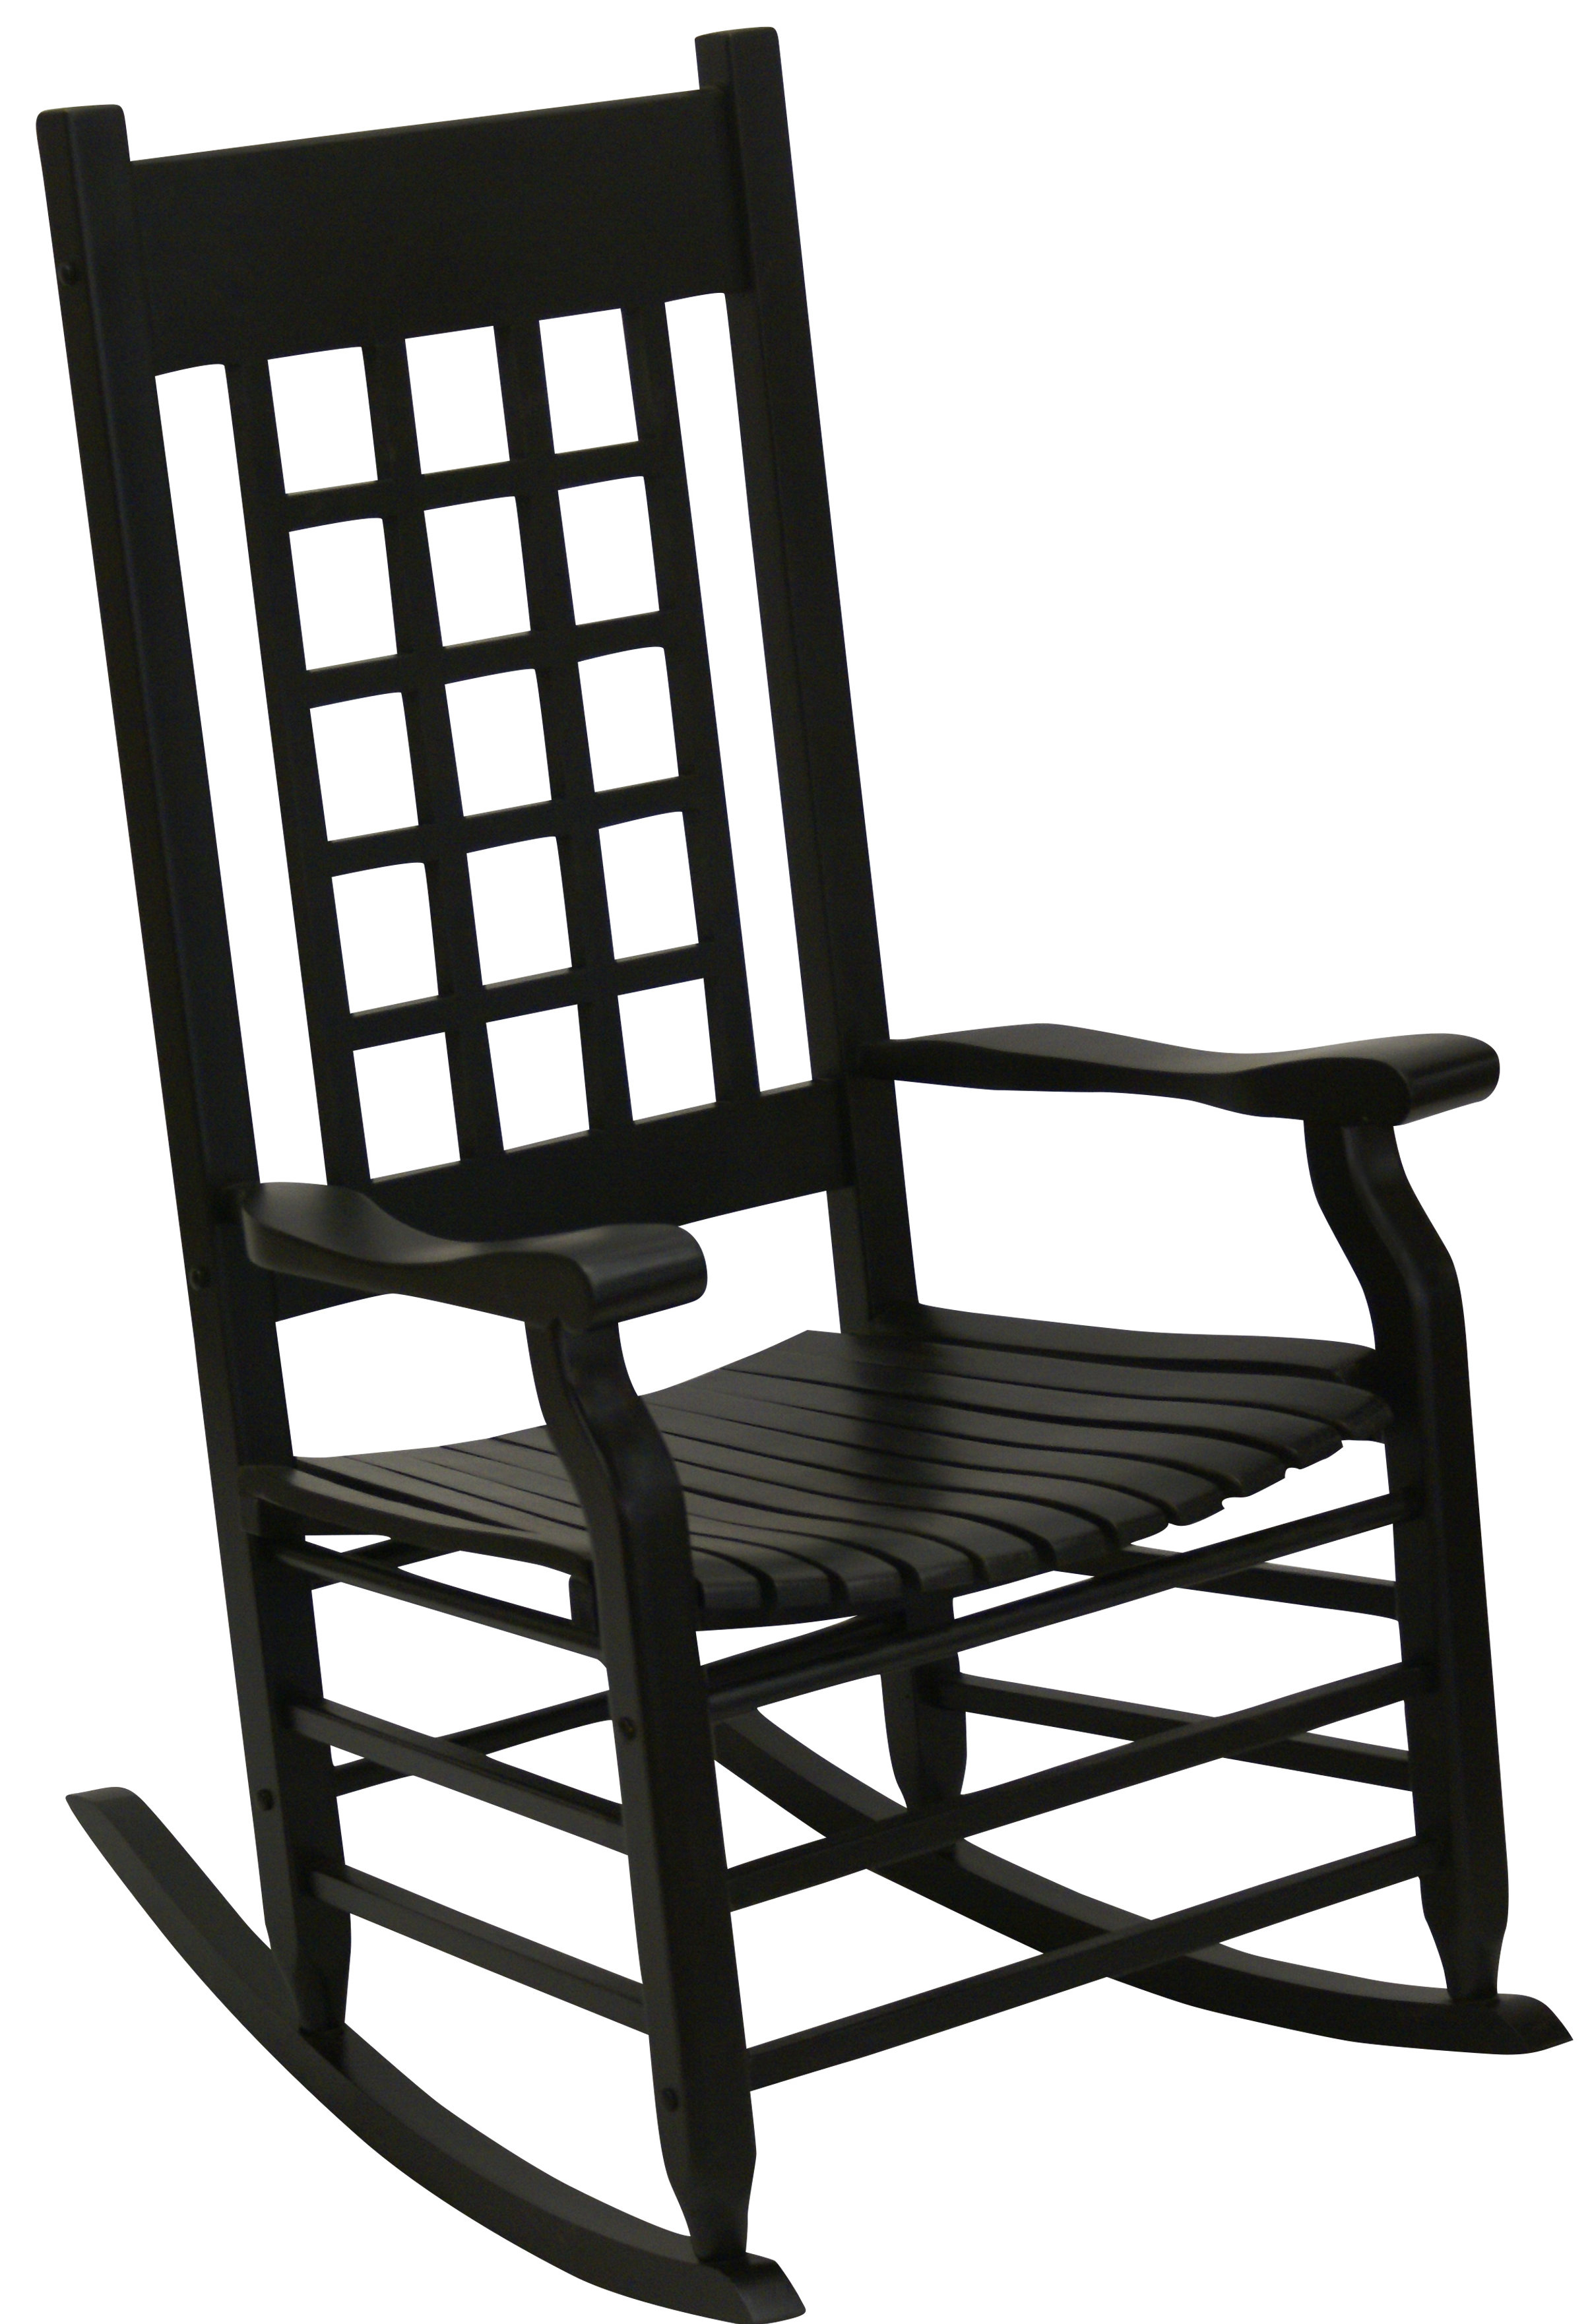 Alcott Hill Hutchcraft Slat Rocking Chair | Wayfair Pertaining To Traditional Style Wooden Rocking Chairs With Contoured Seat, Black (#1 of 20)